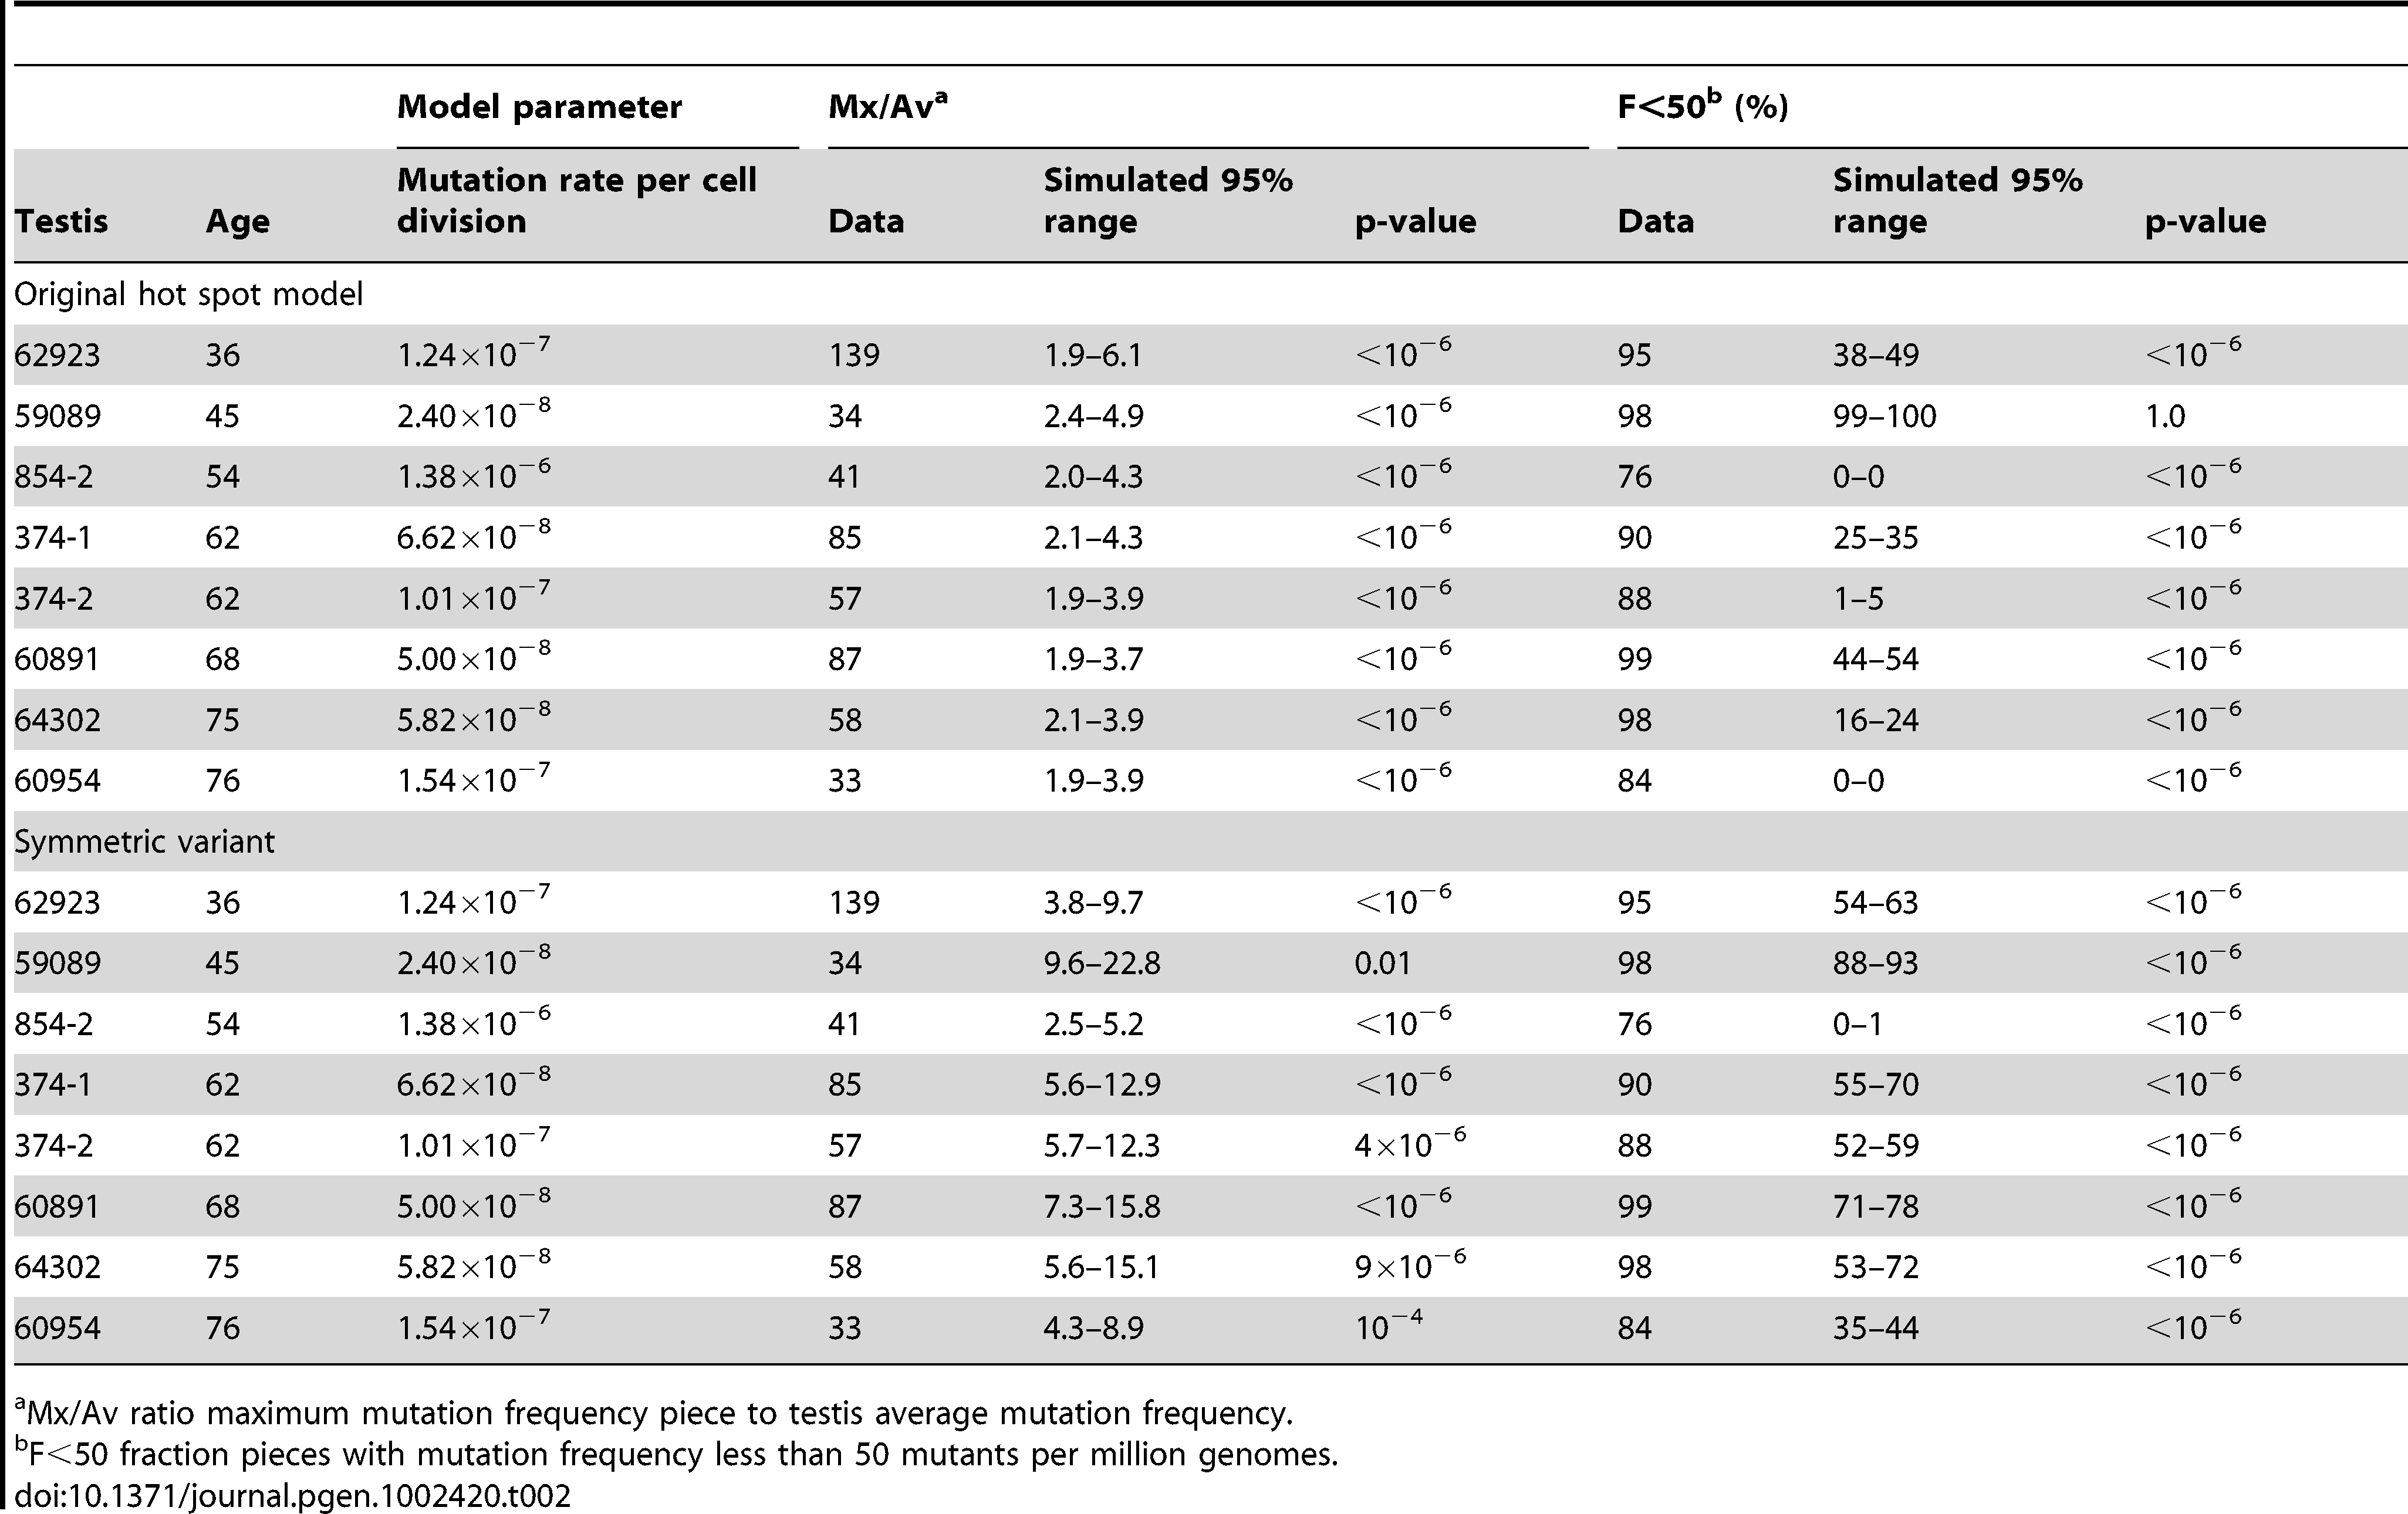 Hot spot model parameter and simulation results for those testes with substantial MEN2B mutation clusters.